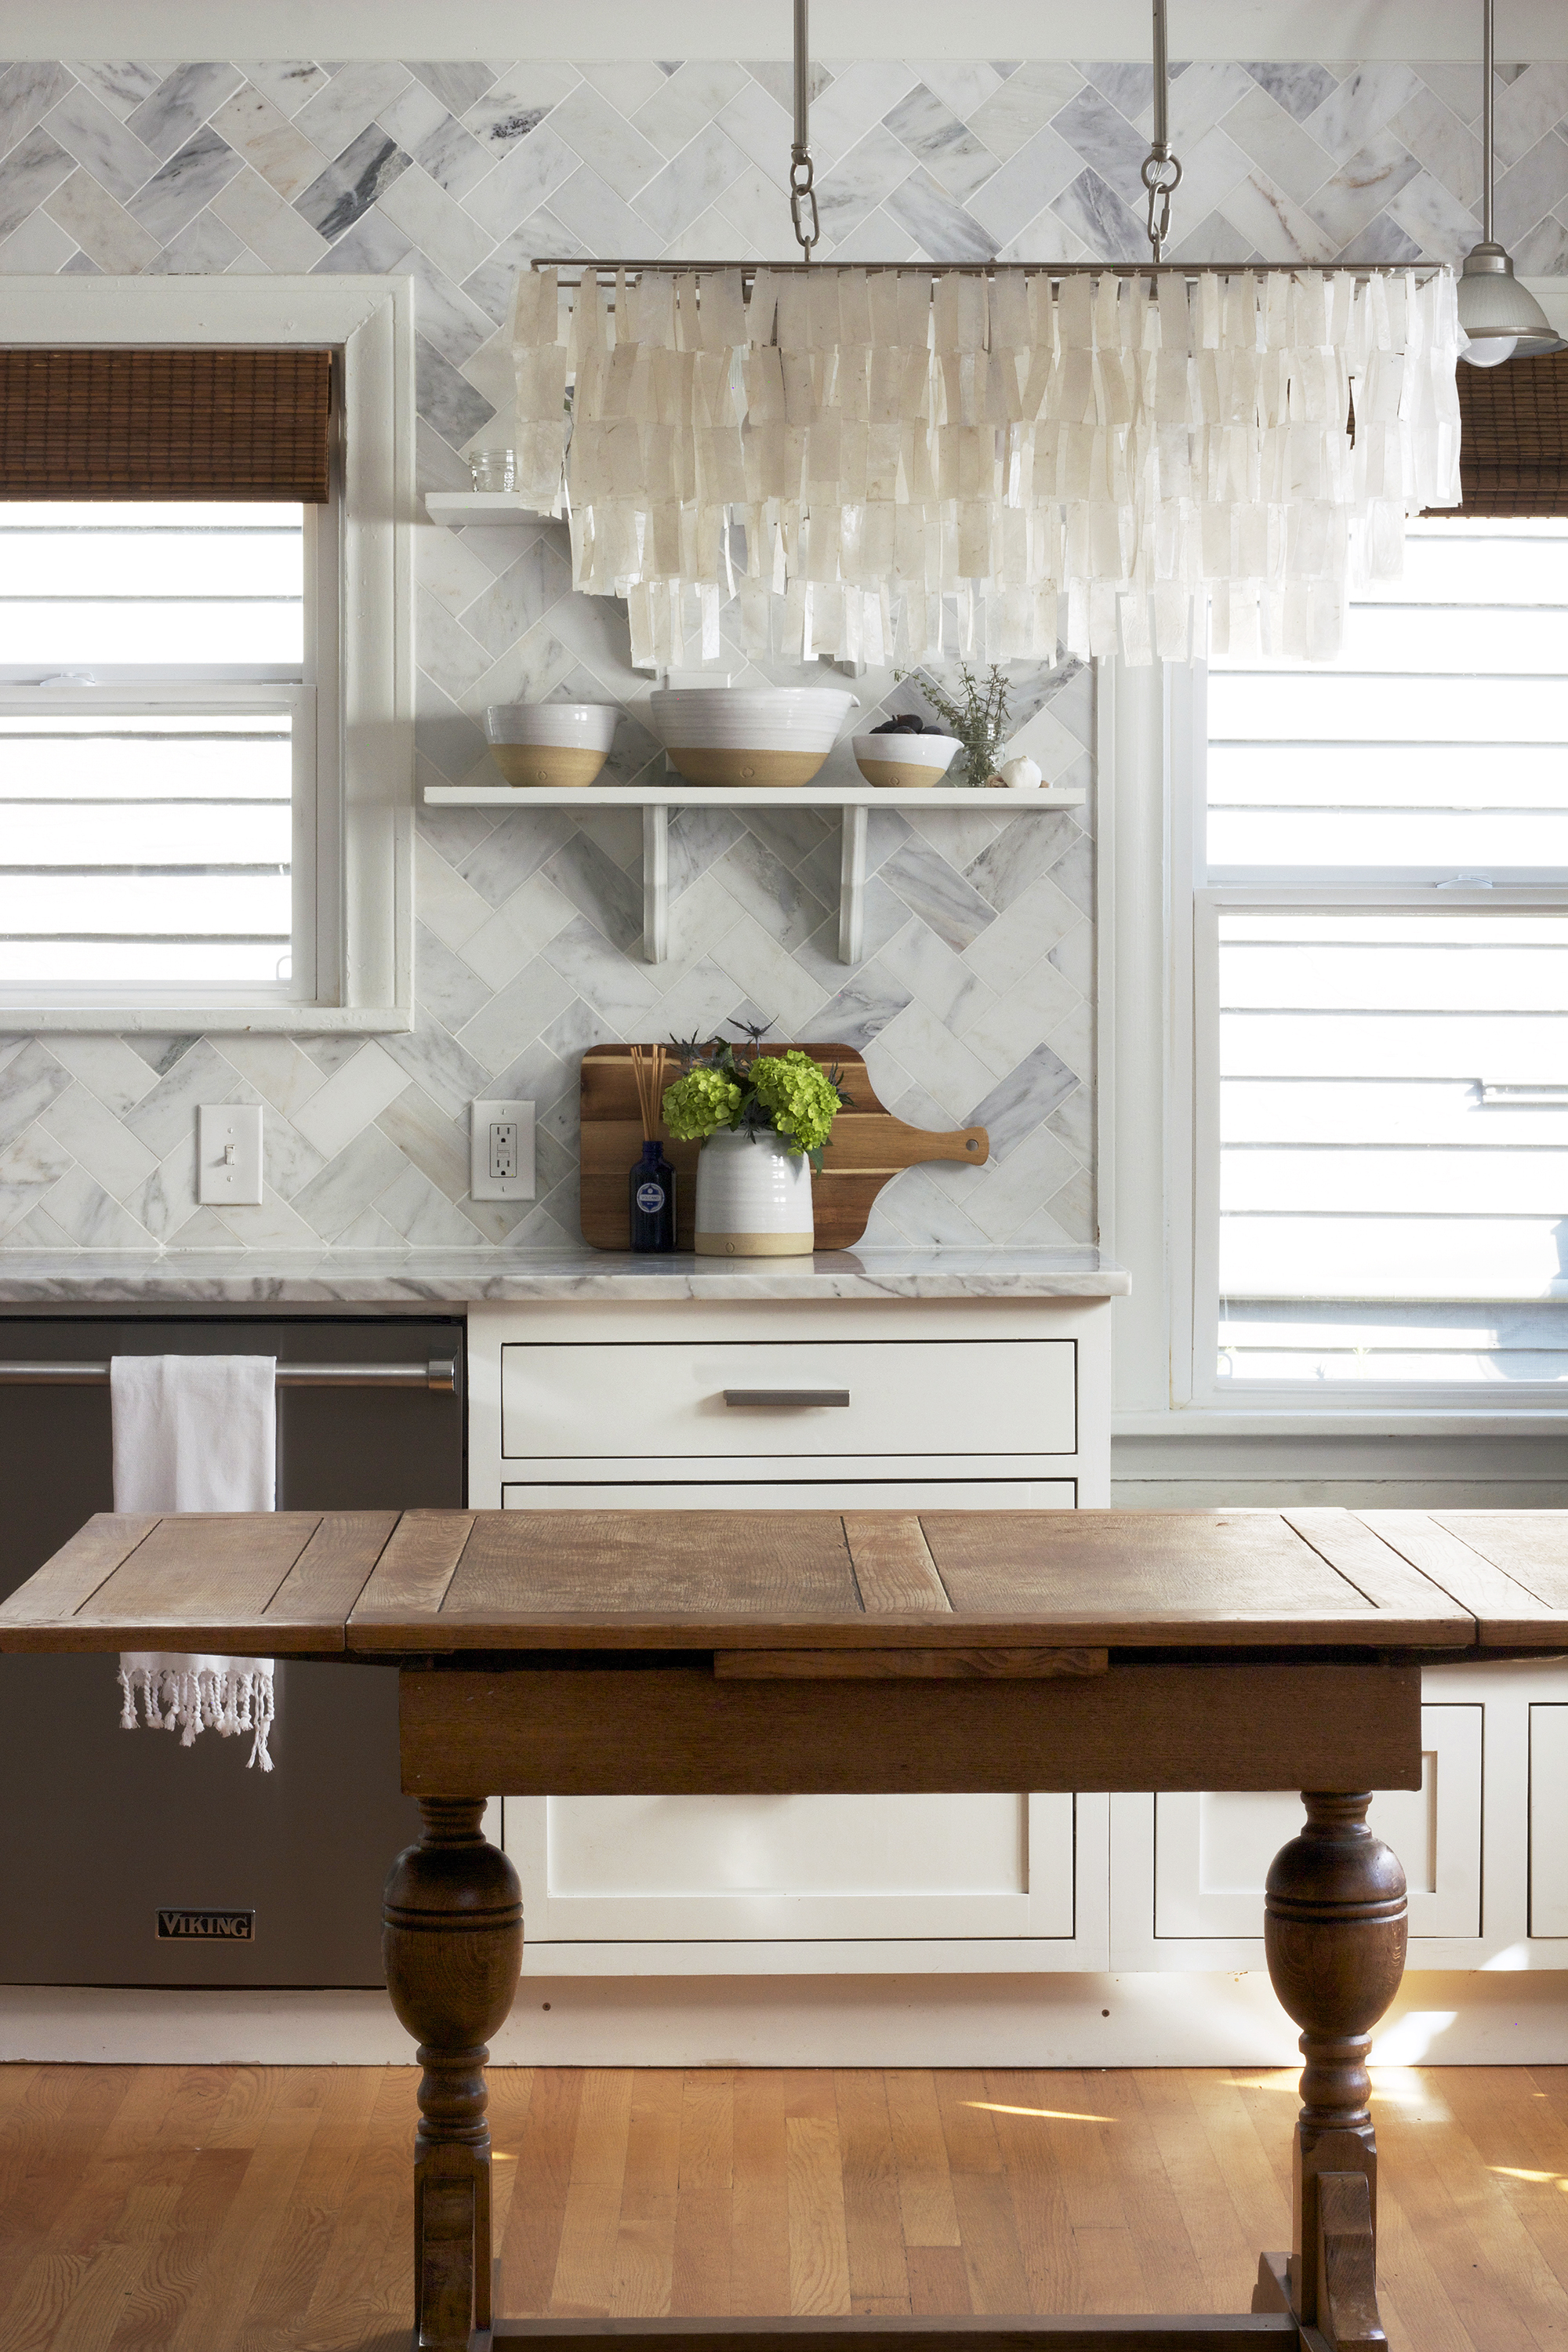 The Grit and Polish - Ravenna 2.0 Wood and Marble Kitchen Shelves.jpg